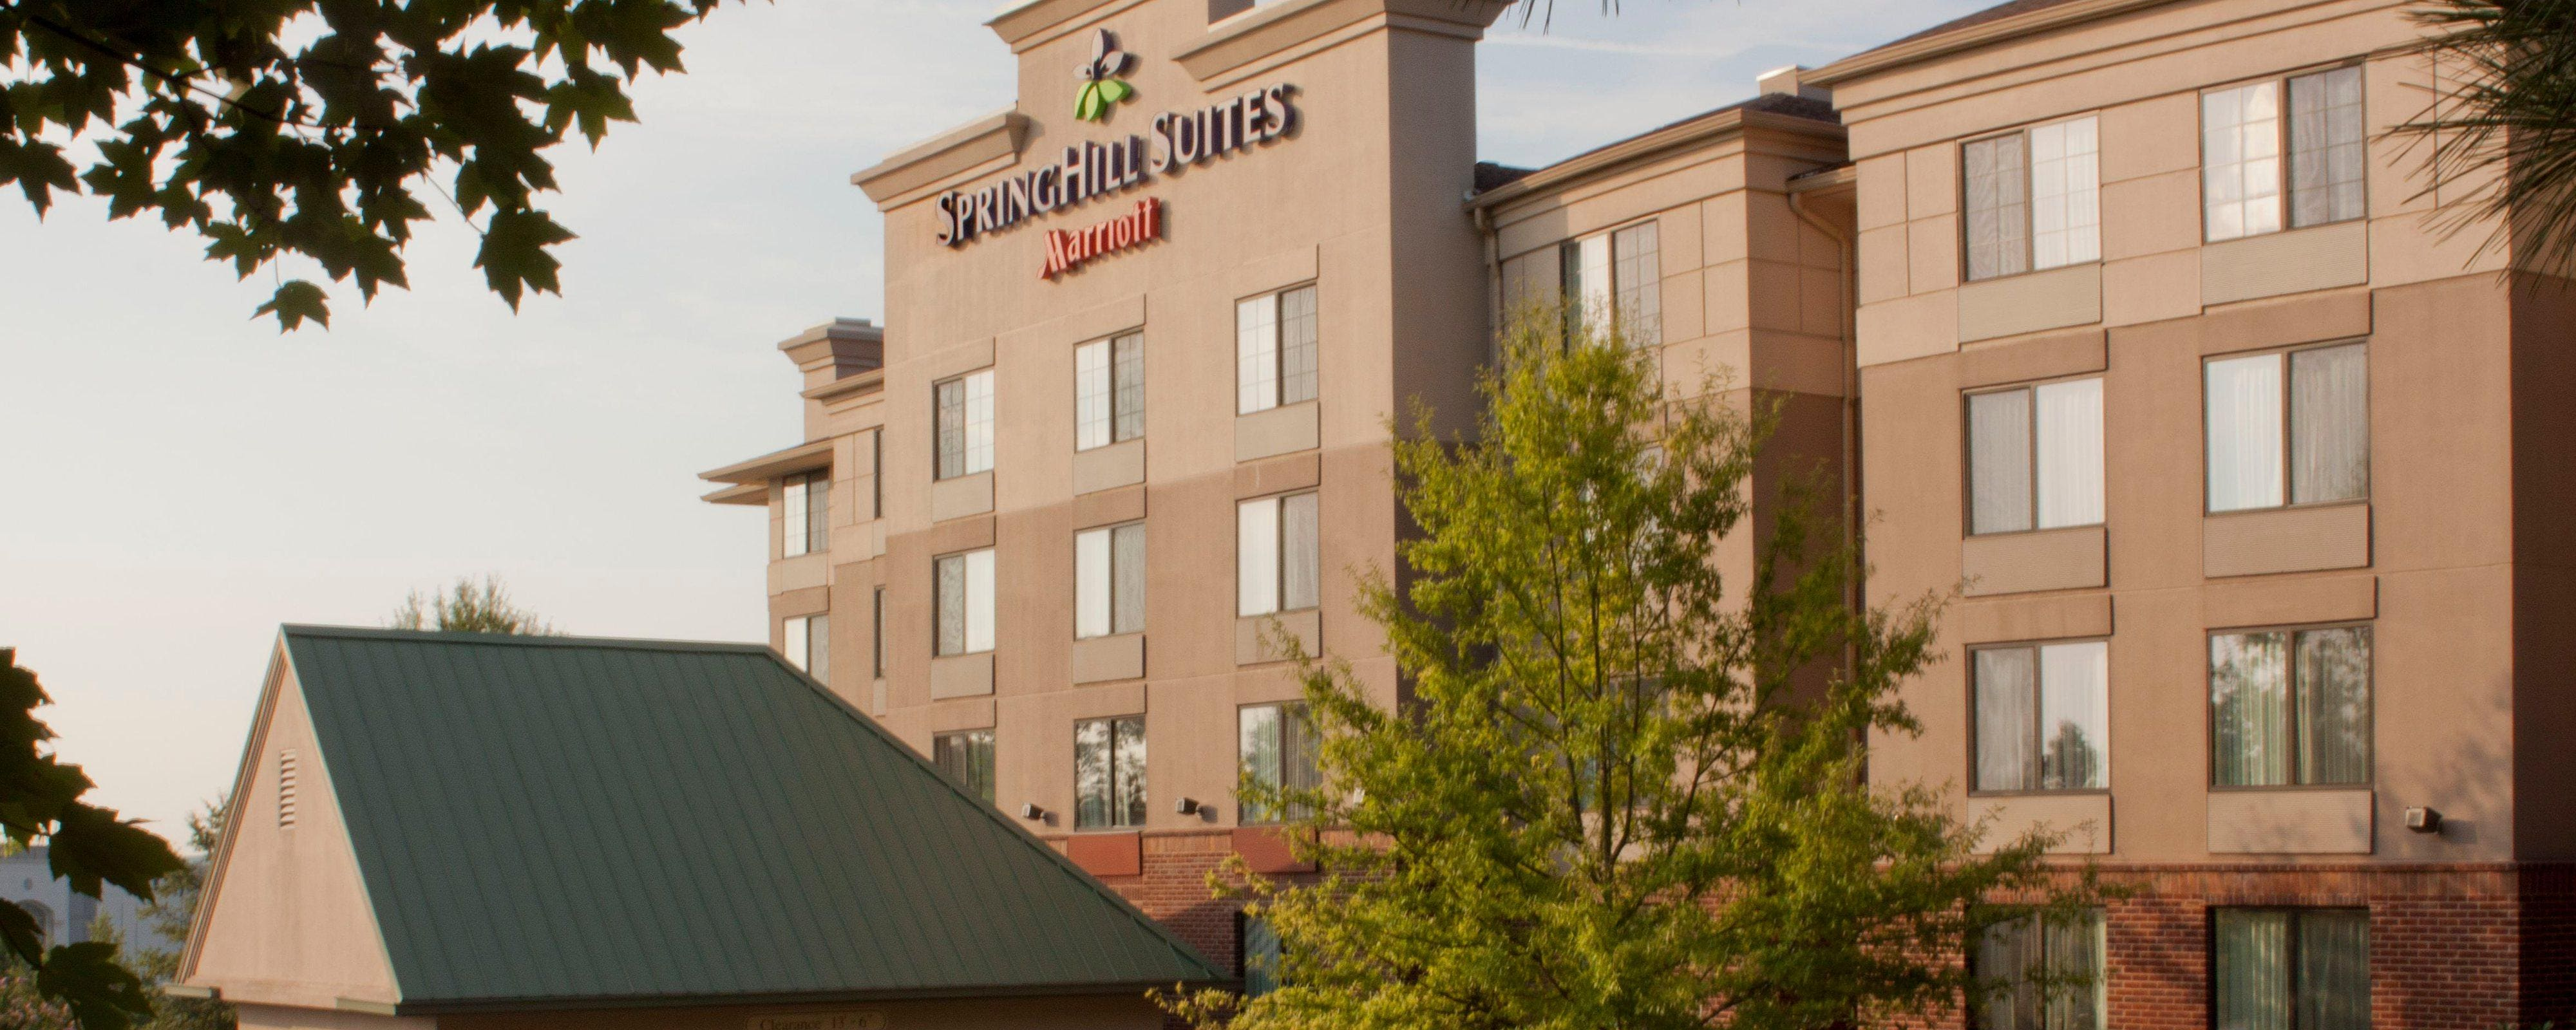 SpringHill Suites Atlanta Buford/Mall of Georgia hotell